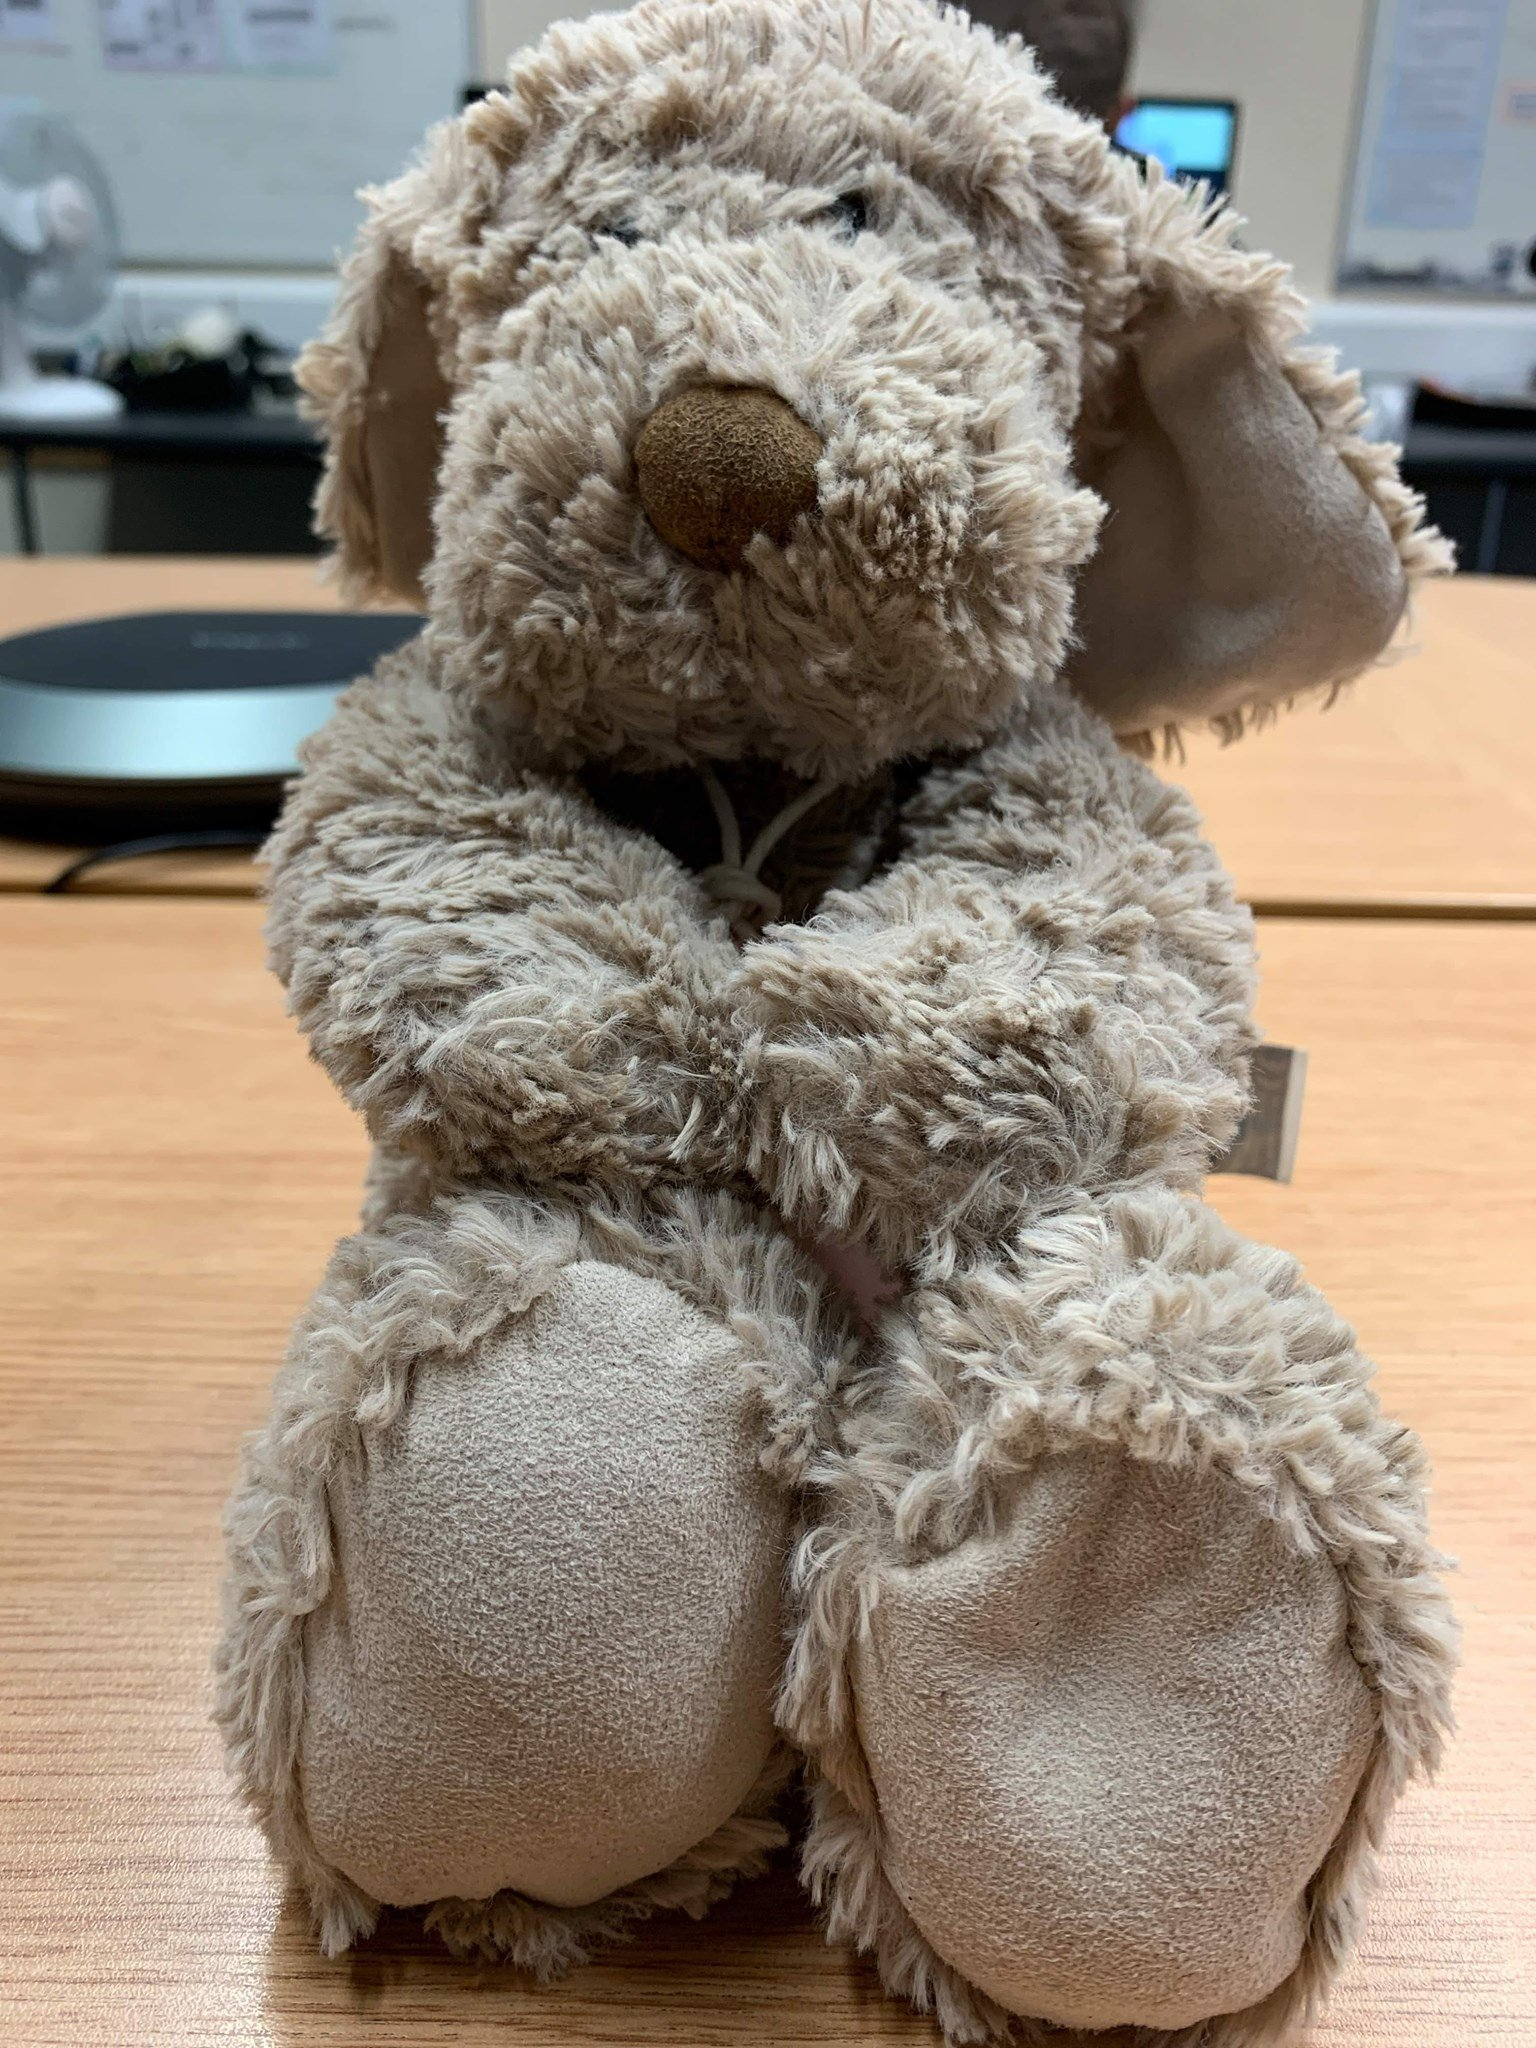 Police trying to reunite missing teddy bear with its owner